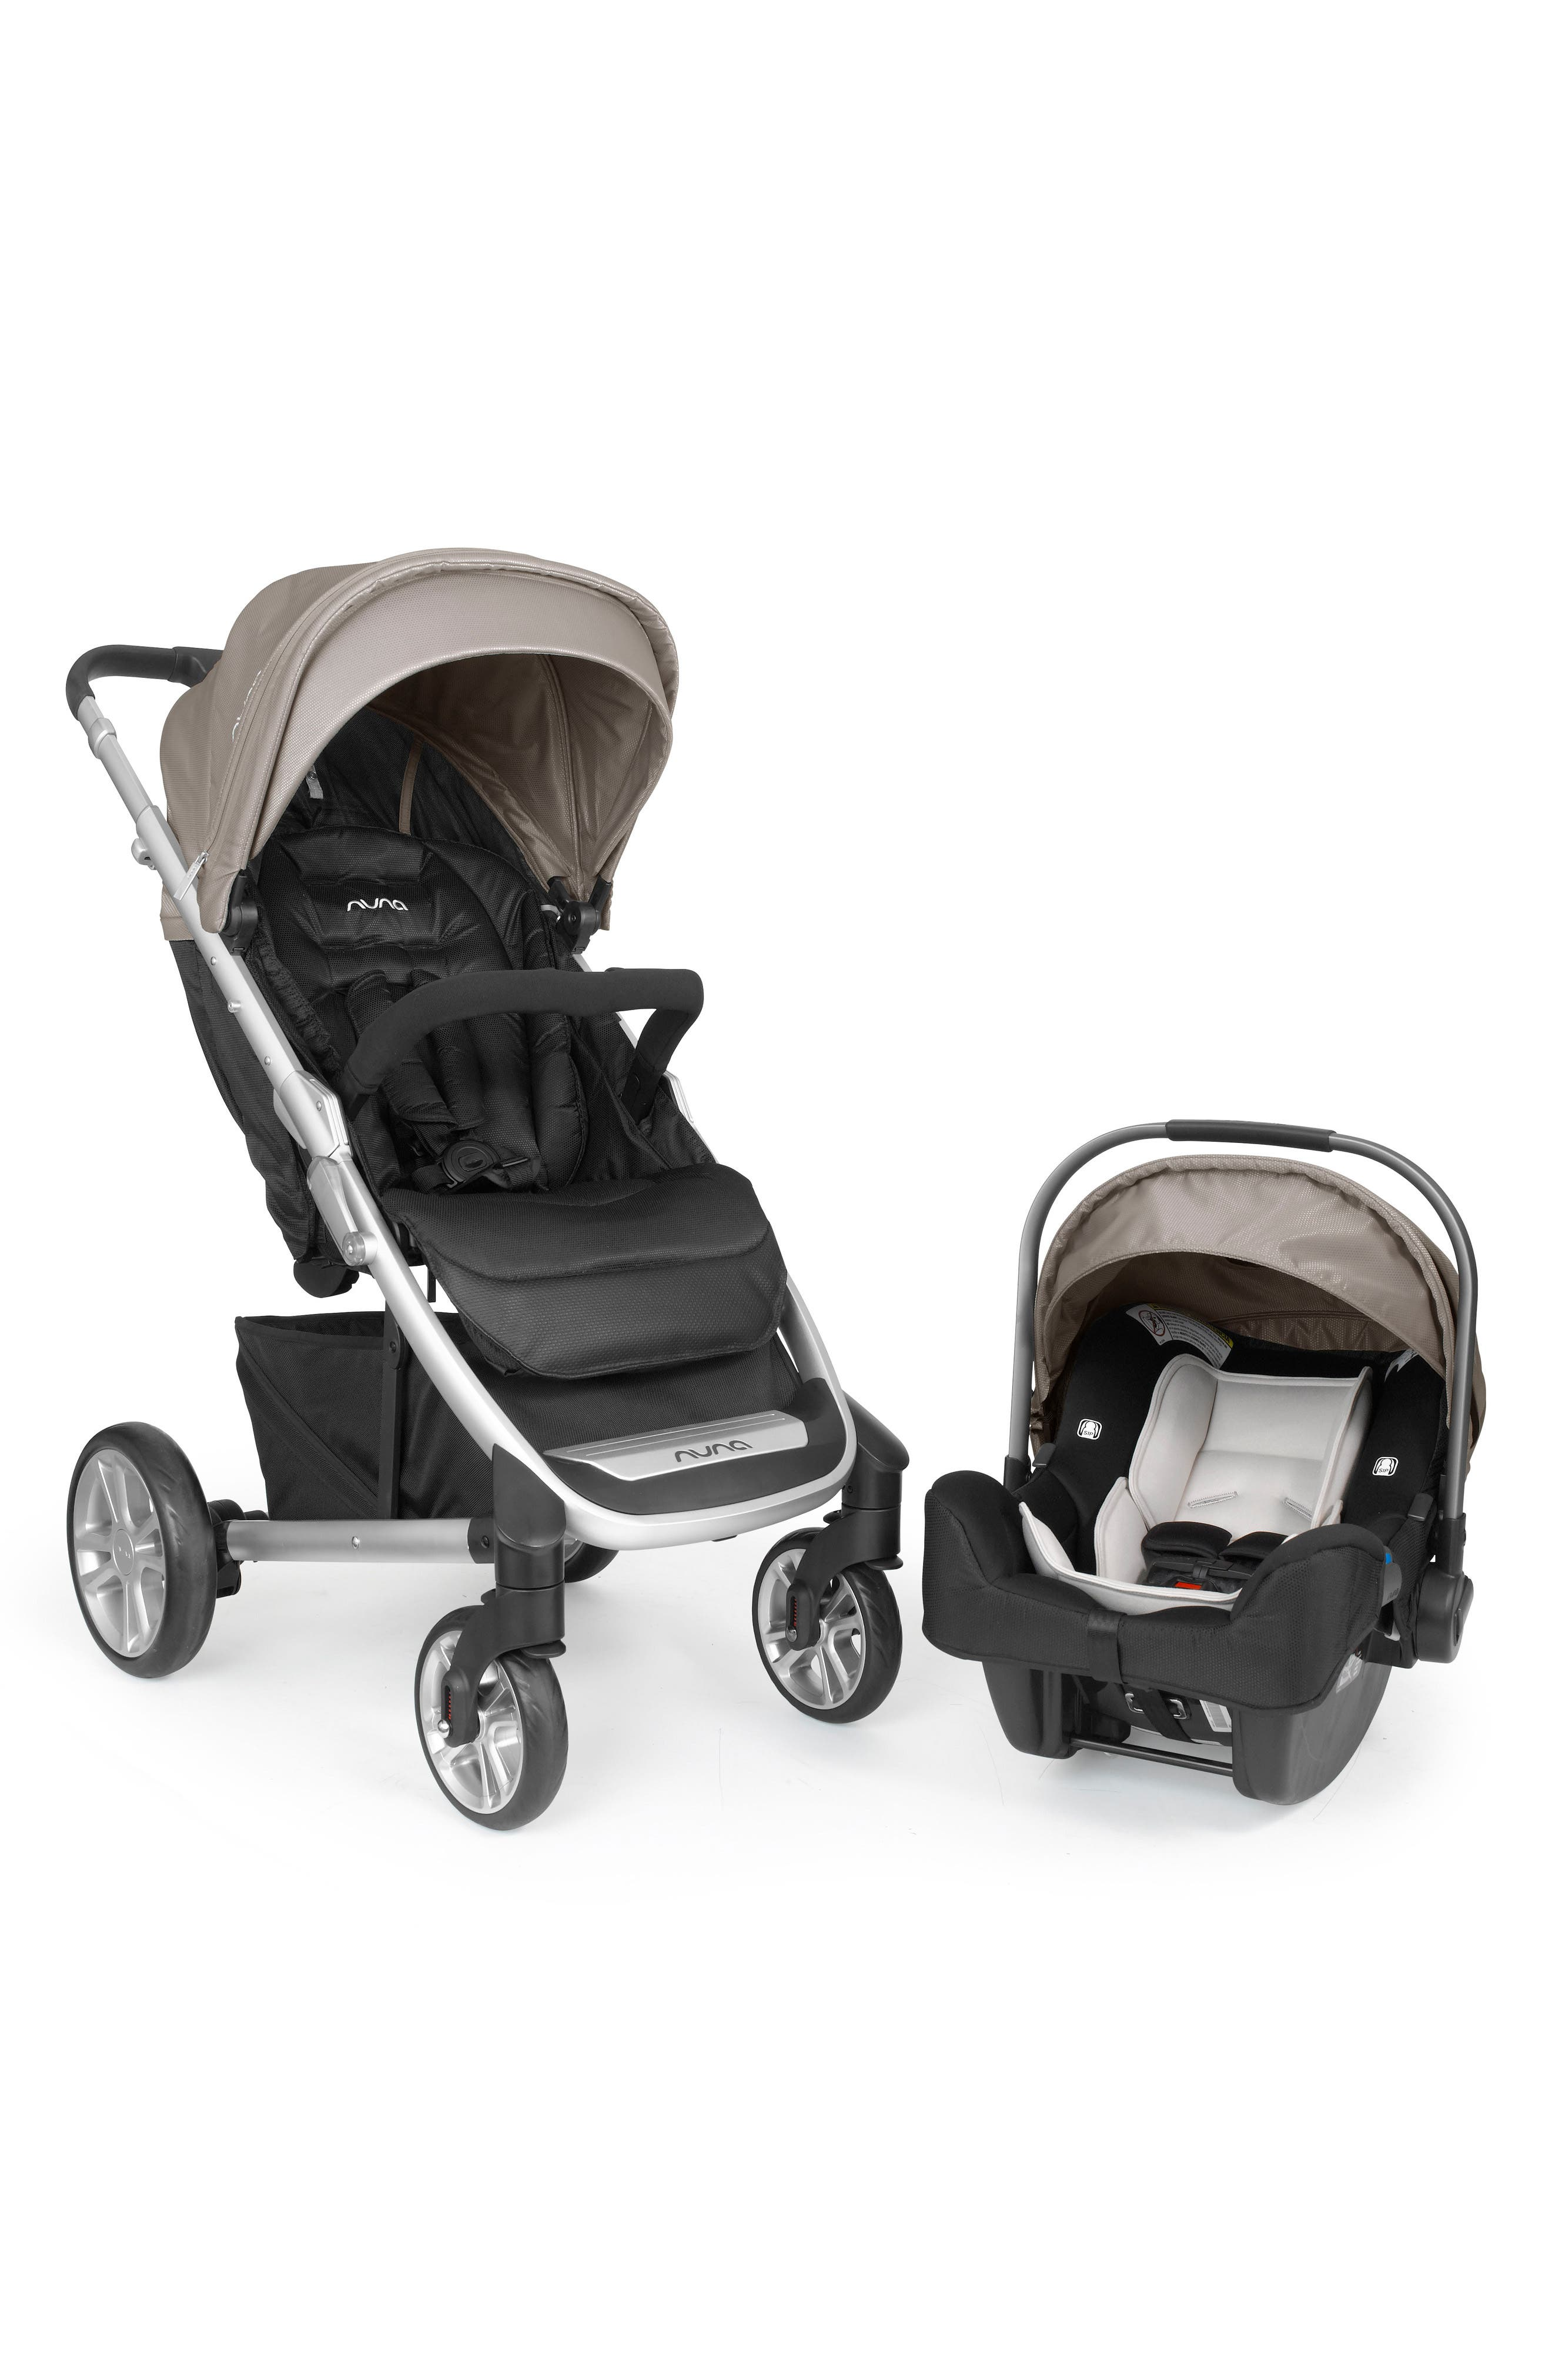 Alternate Image 1 Selected - nuna 'TAVO™' Travel System (Stroller, Car Seat & Base)